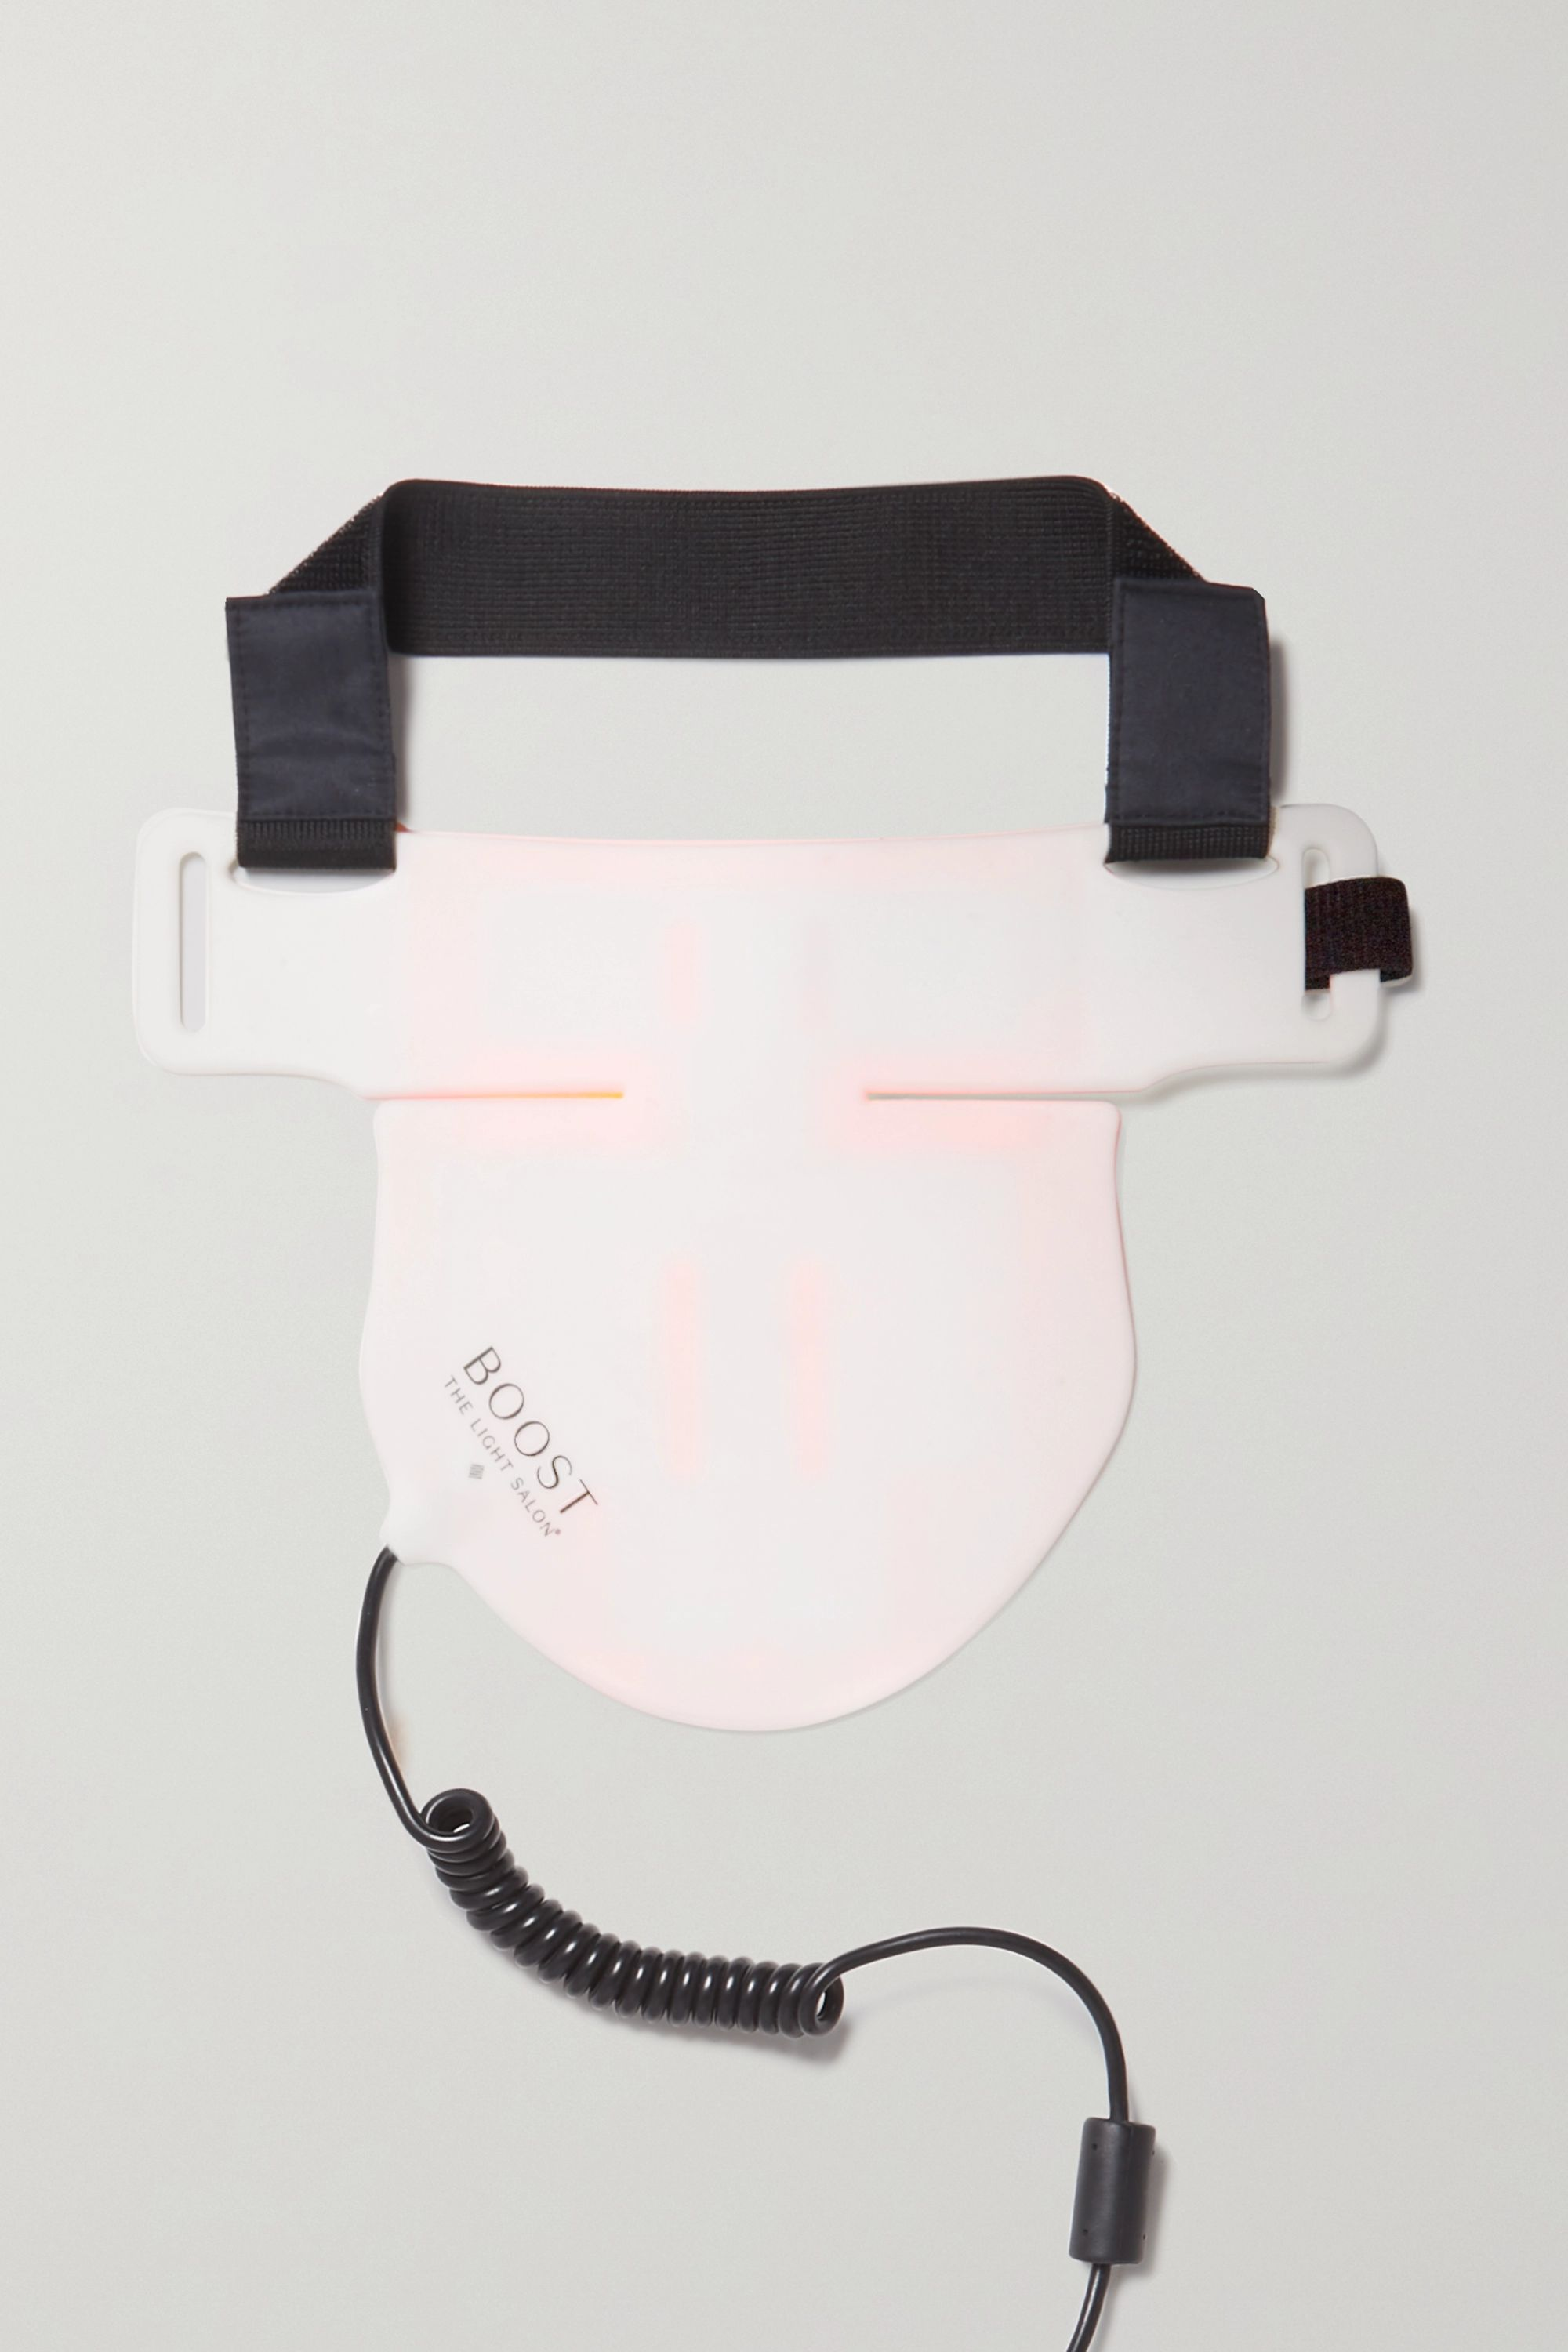 The Light Salon Boost Advanced LED Light Therapy Décolletage Bib